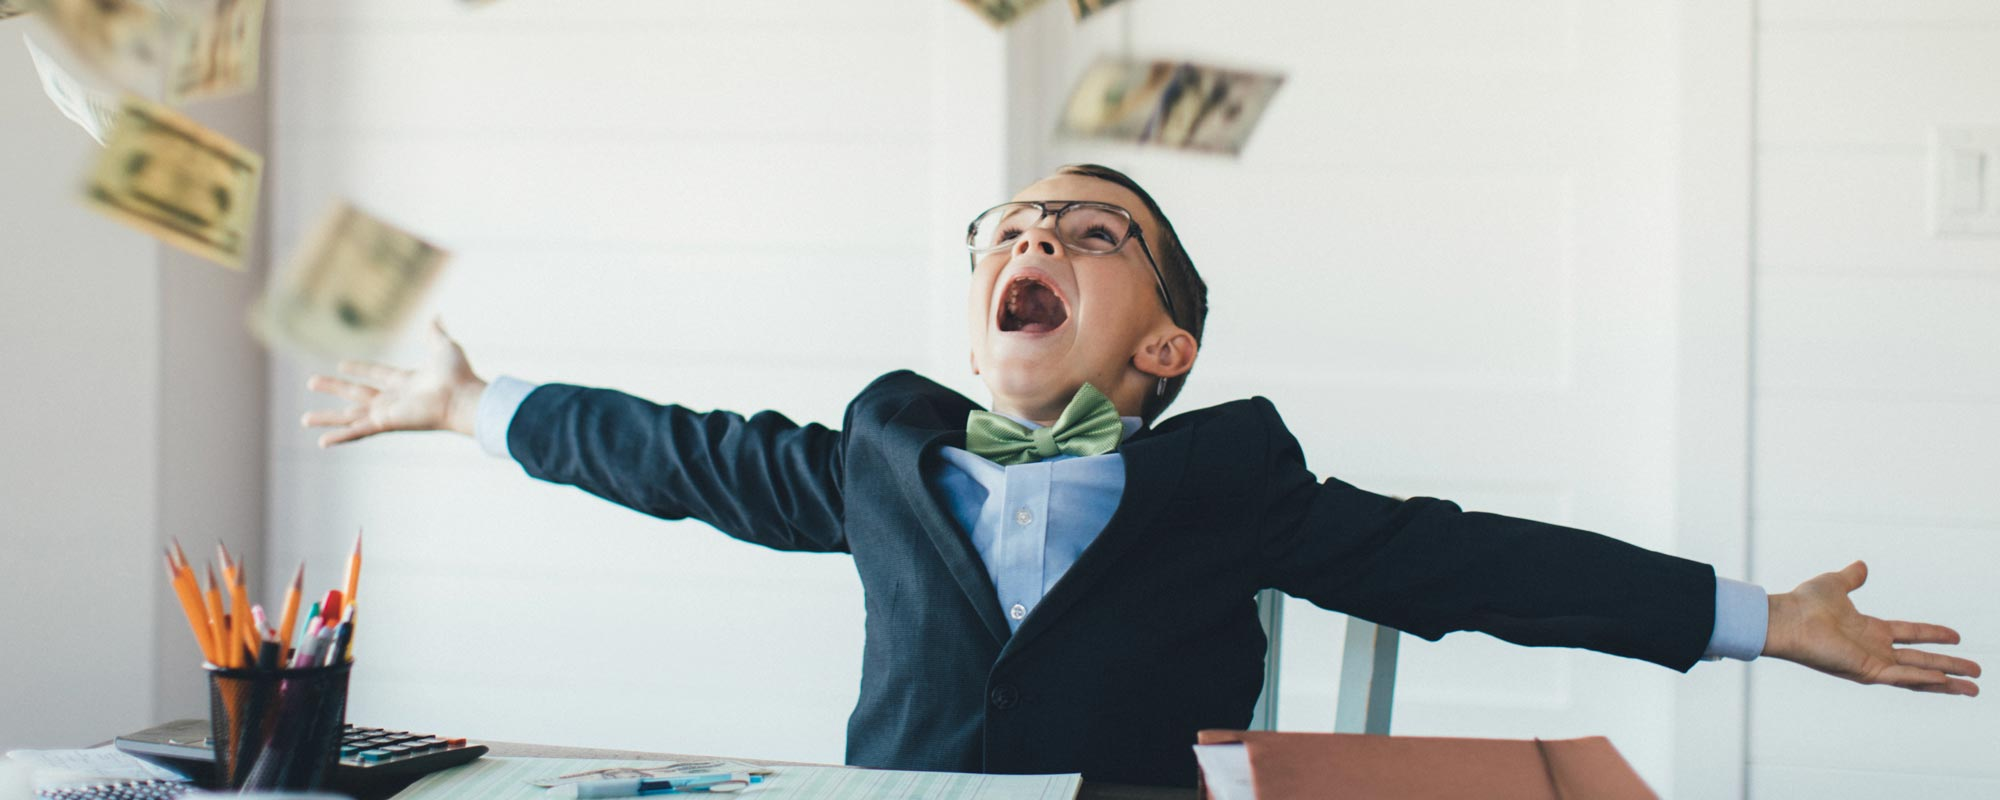 creative photo of boy dressed in a suite sitting at a desk throwing money in the air